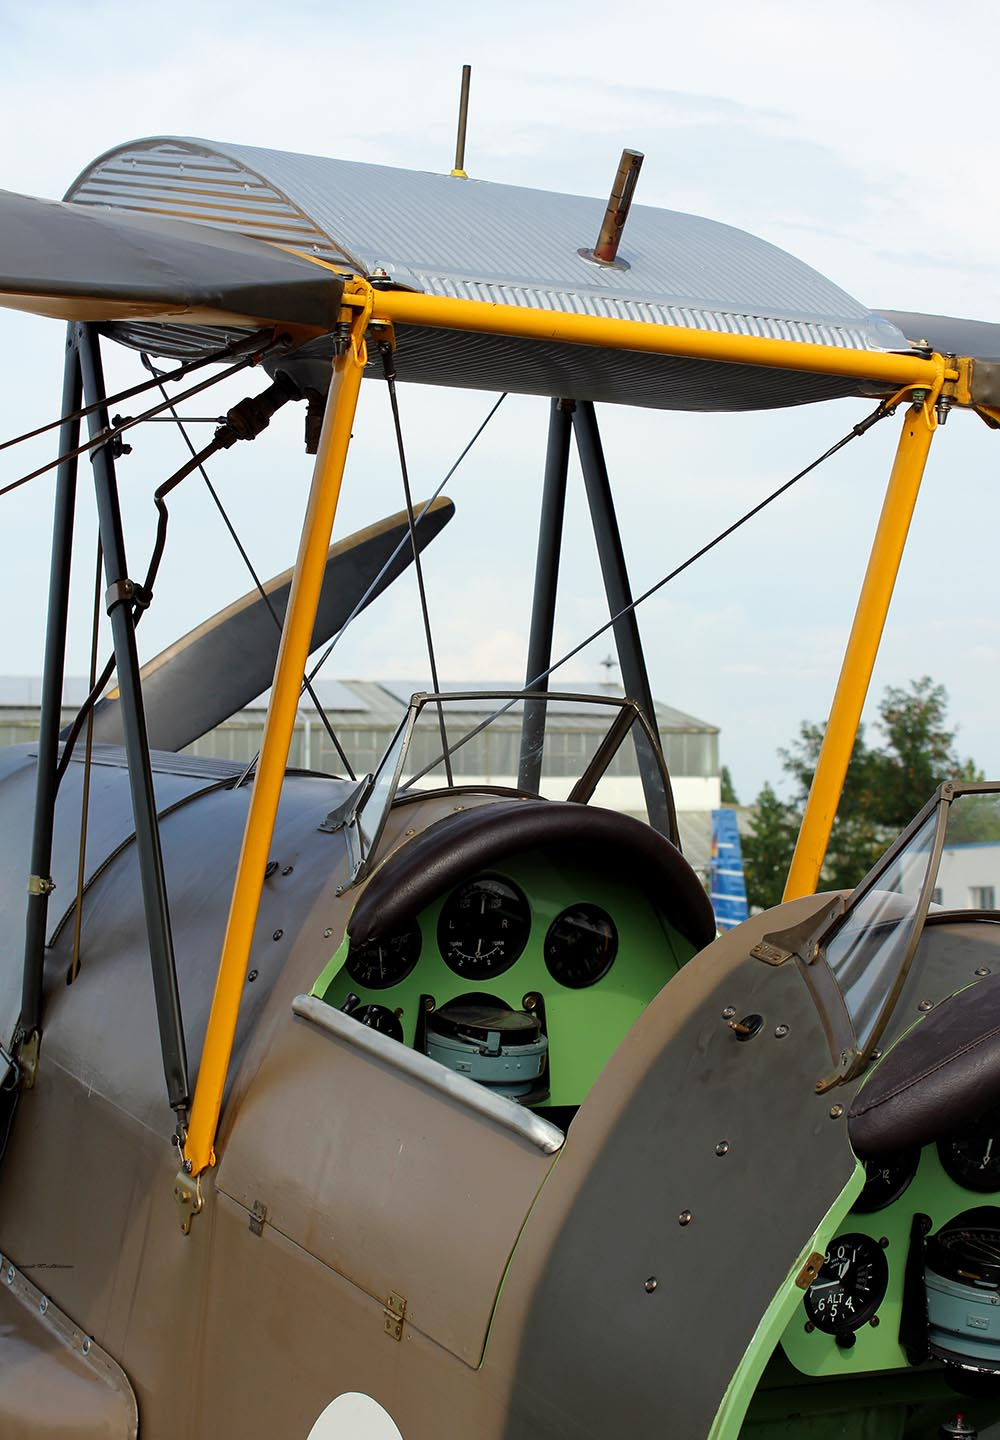 De_Havilland_TigerMoth_D-ECTM_2011-08-2511.jpg